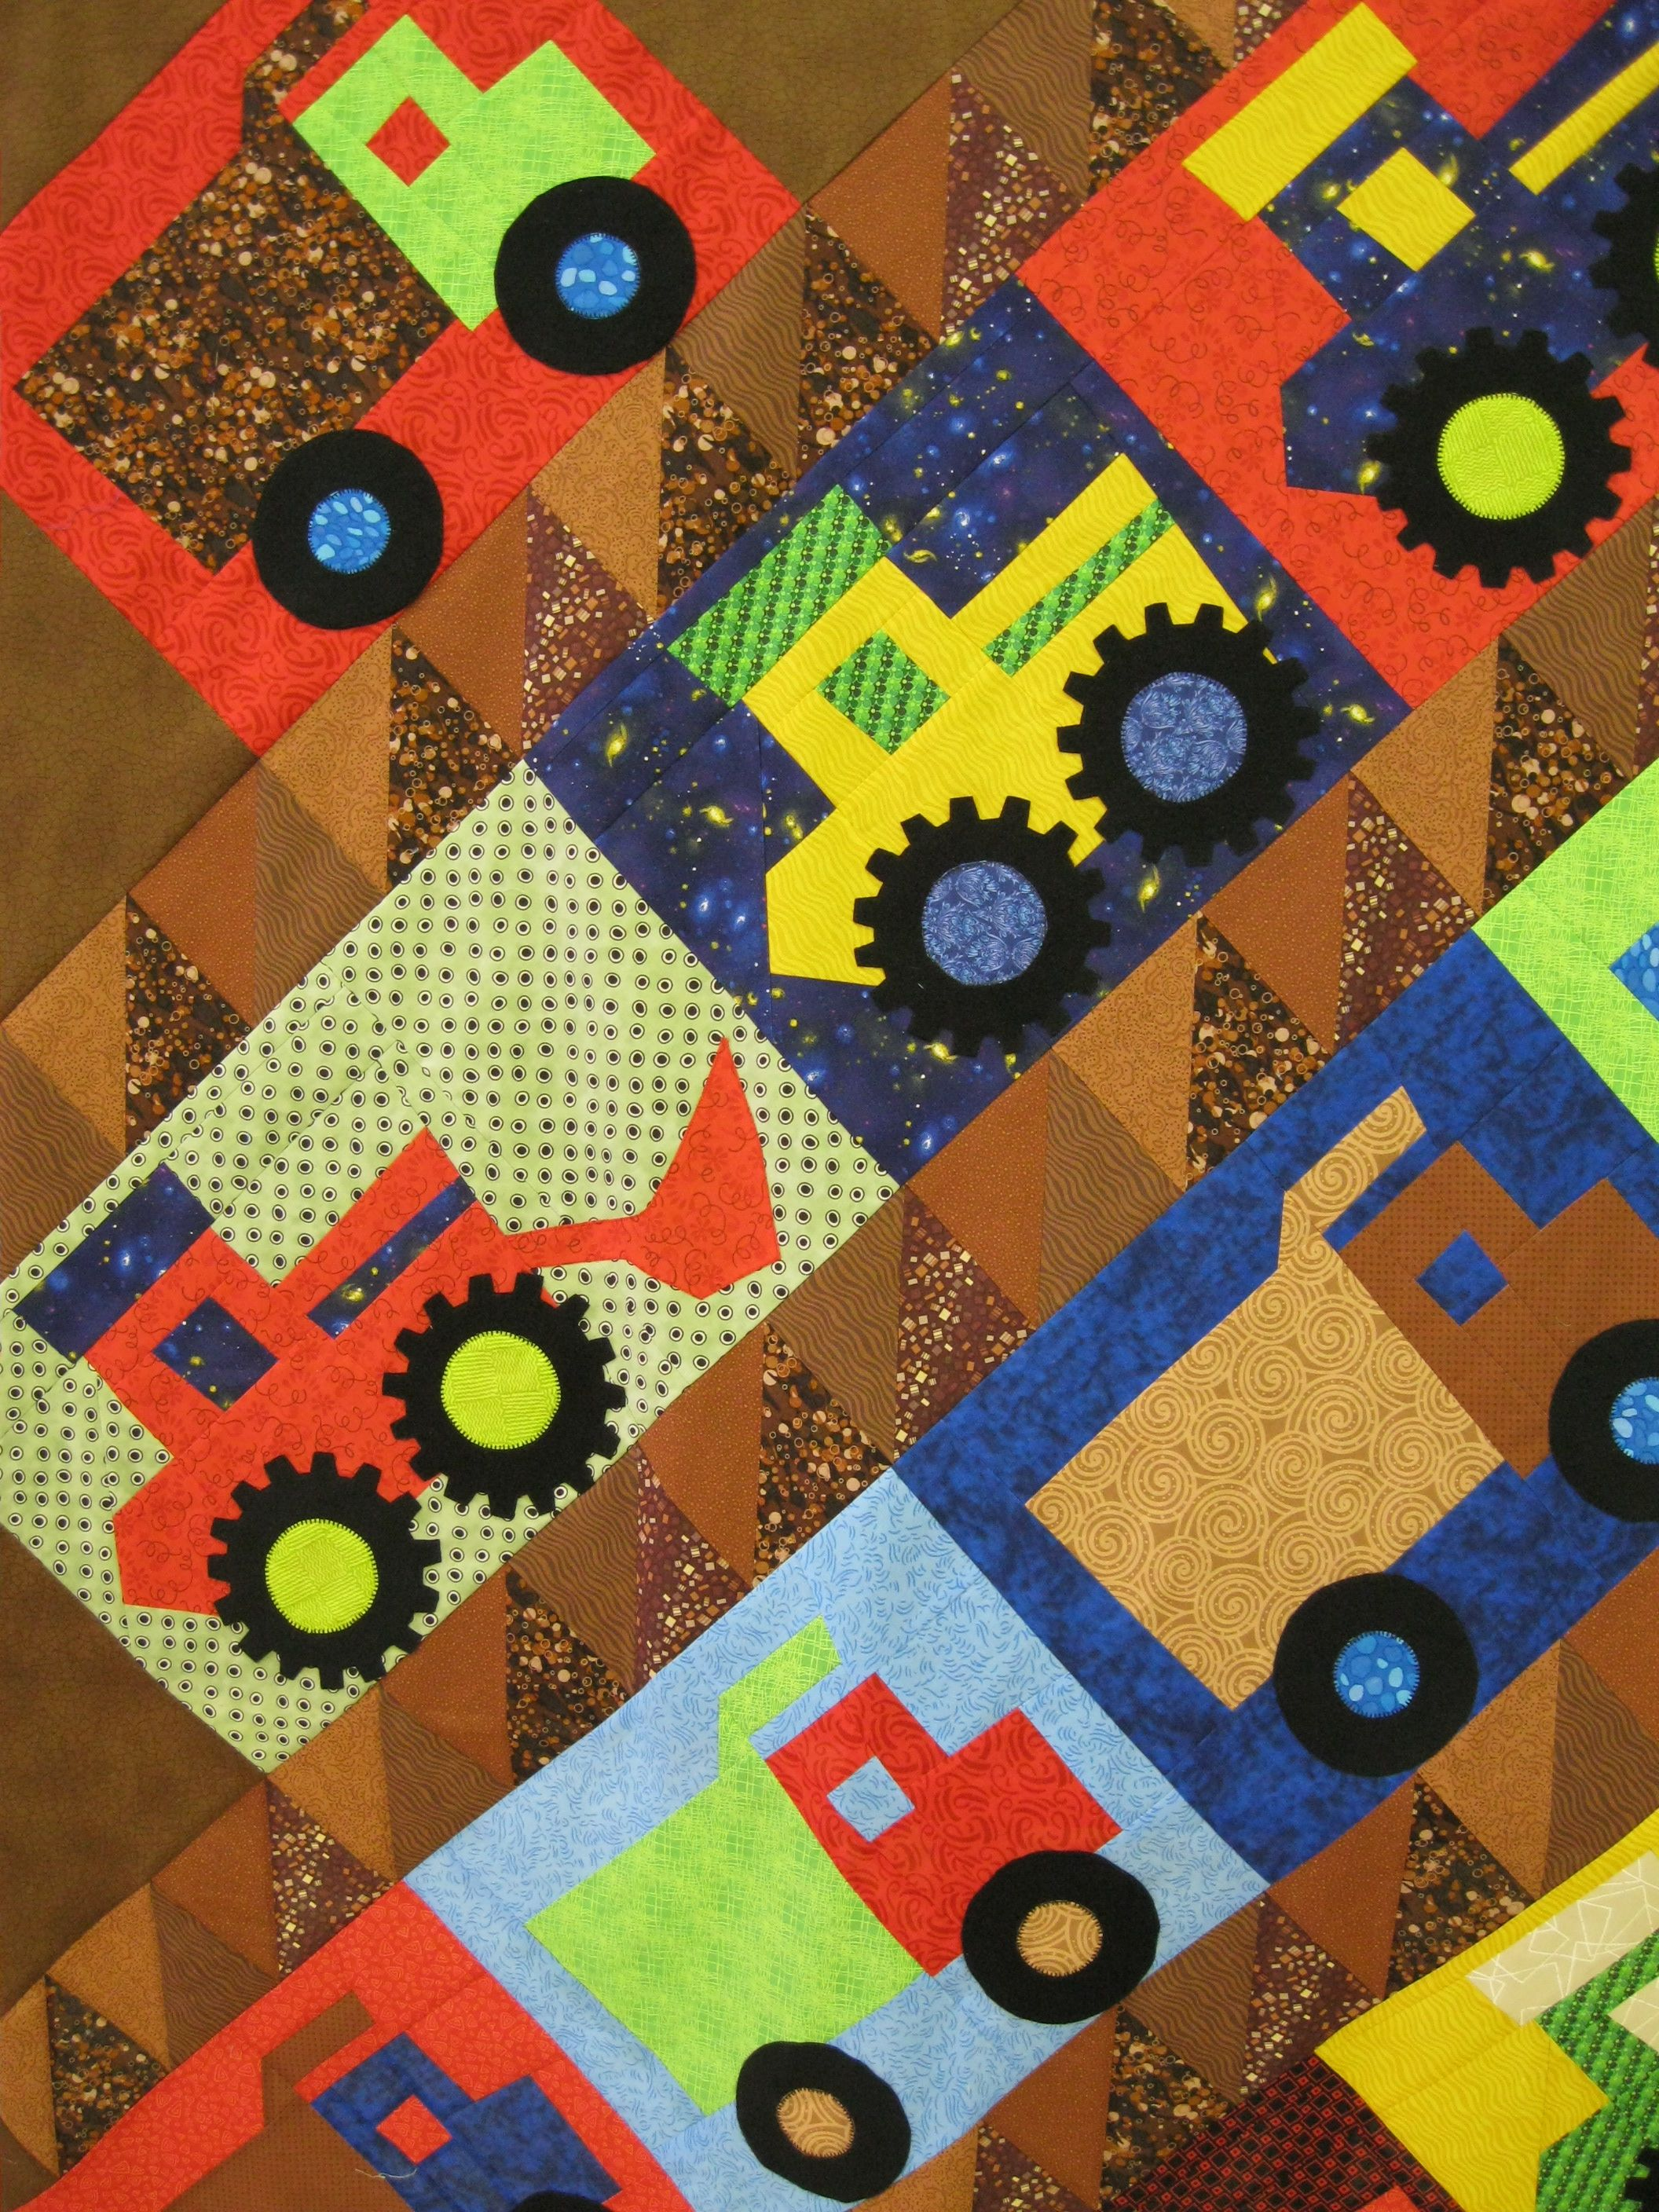 Free Buggy Barn Patterns | Buggy Barn quilt by Michelle Clubb ... : quilts designs free - Adamdwight.com